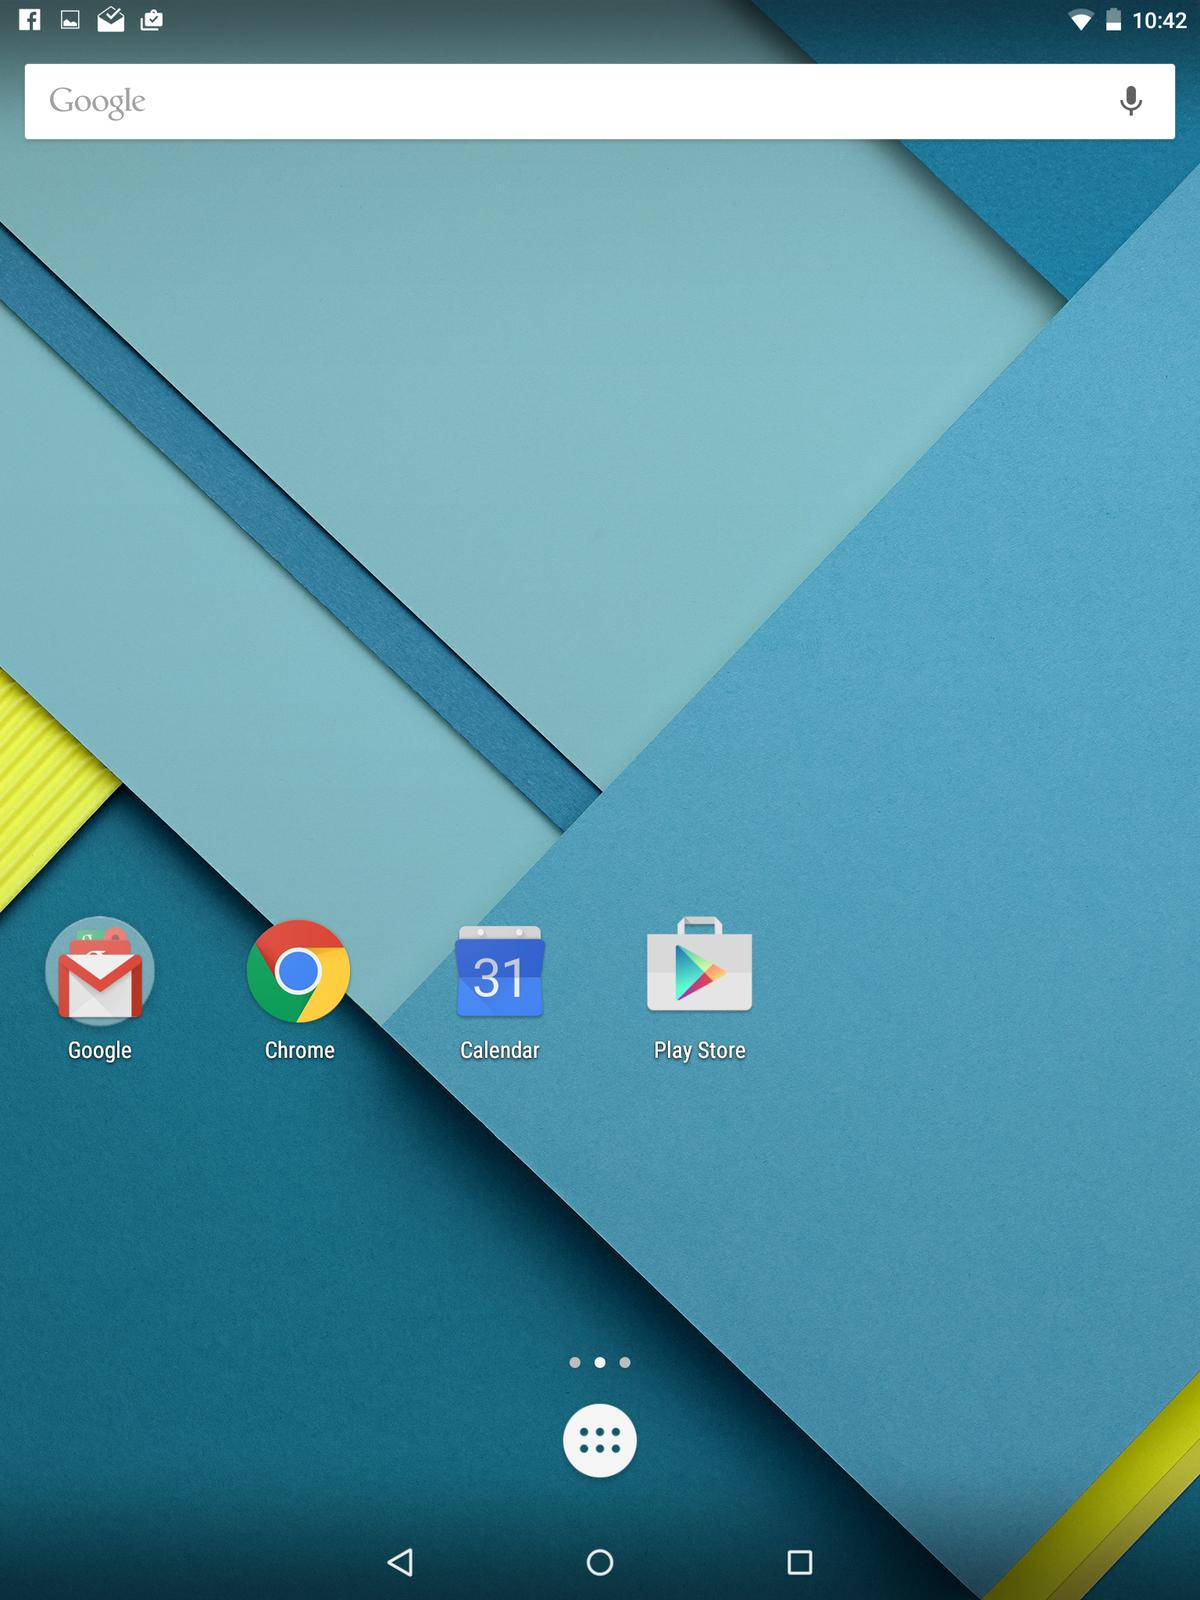 The default home screen on the Nexus 9